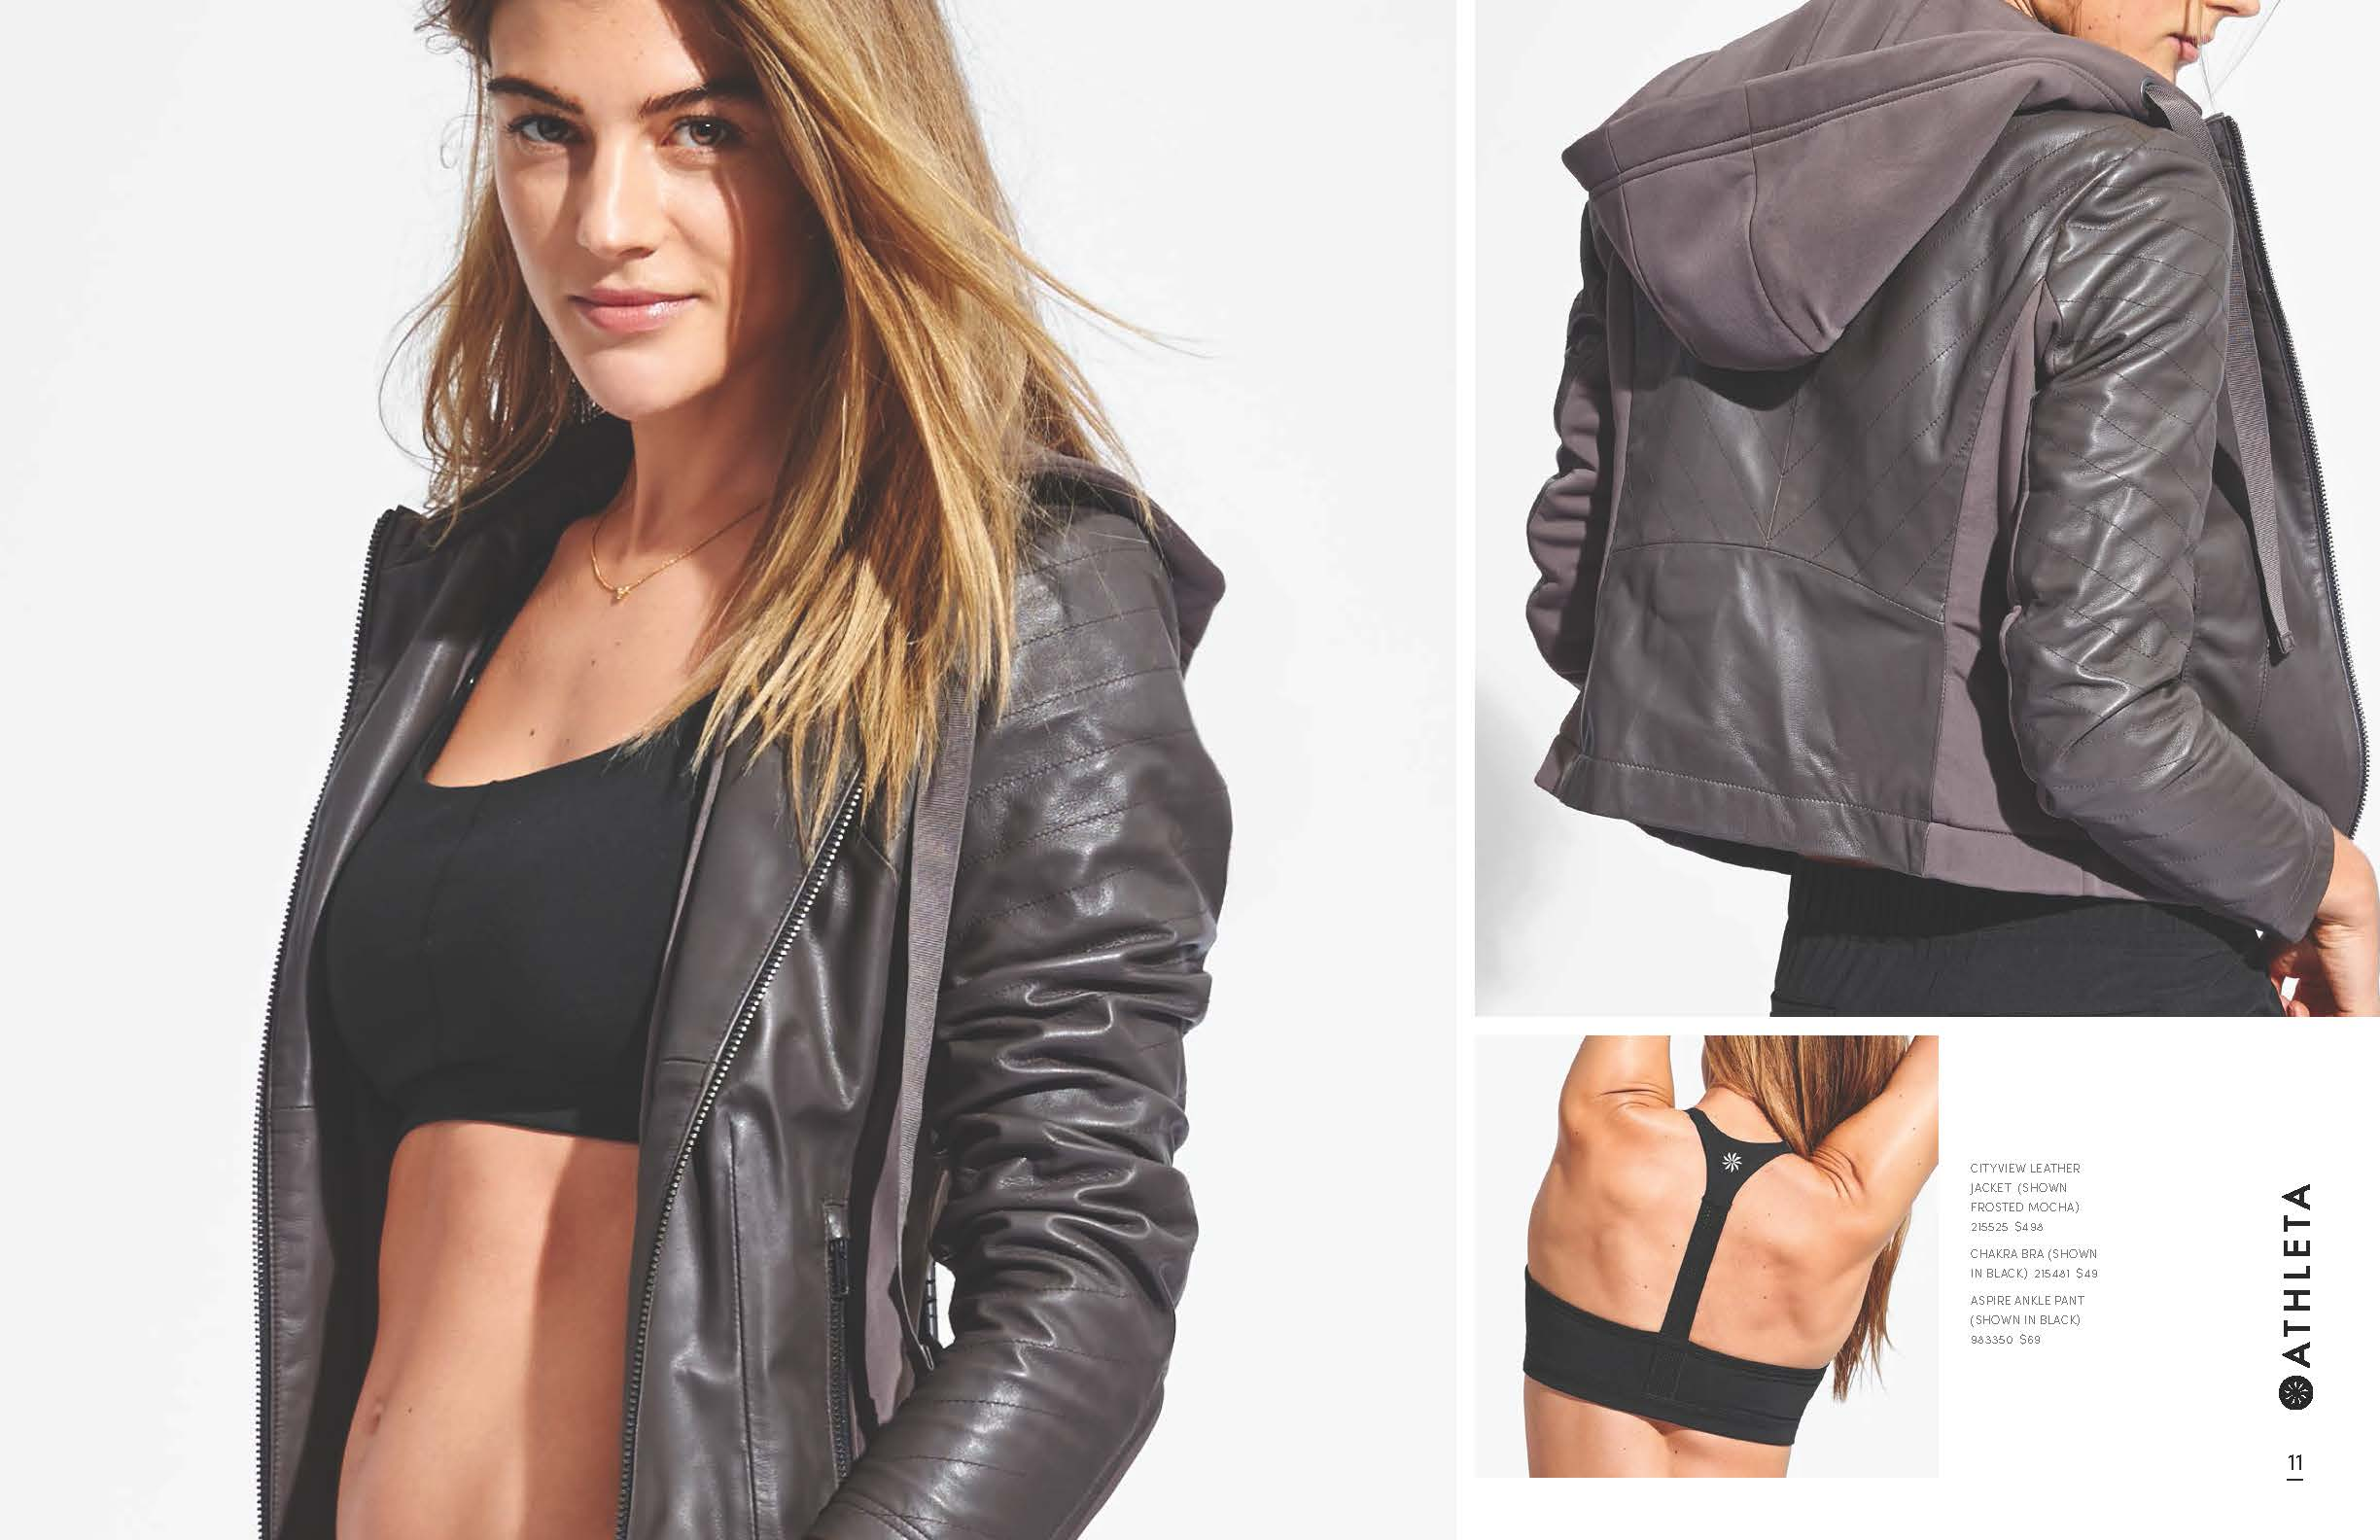 ATHLETA_LOOKBOOK_FINAL_Page_11.JPG